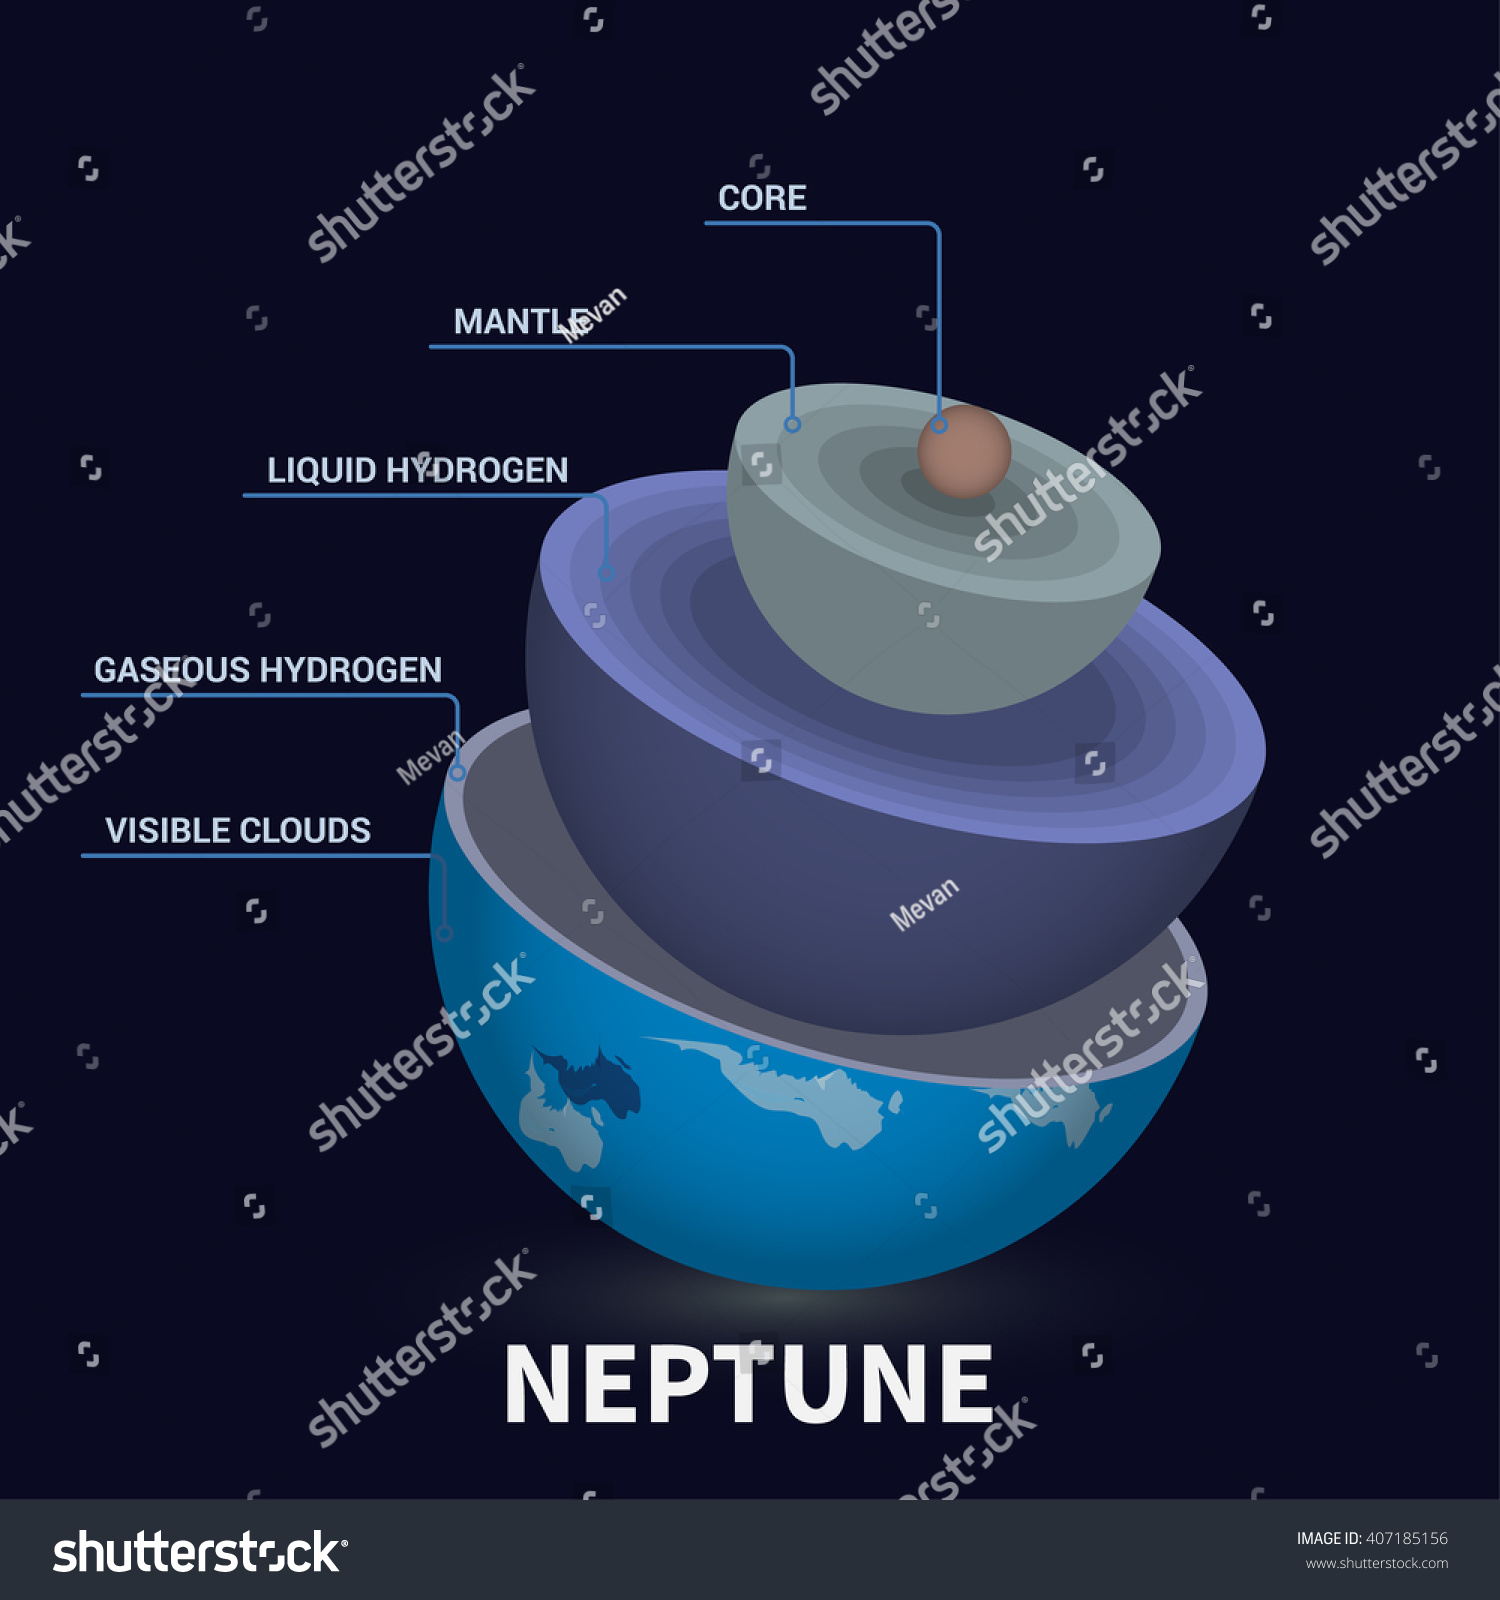 geological structure neptune internal structure neptune ... wireing diagram for back up camera for motor home